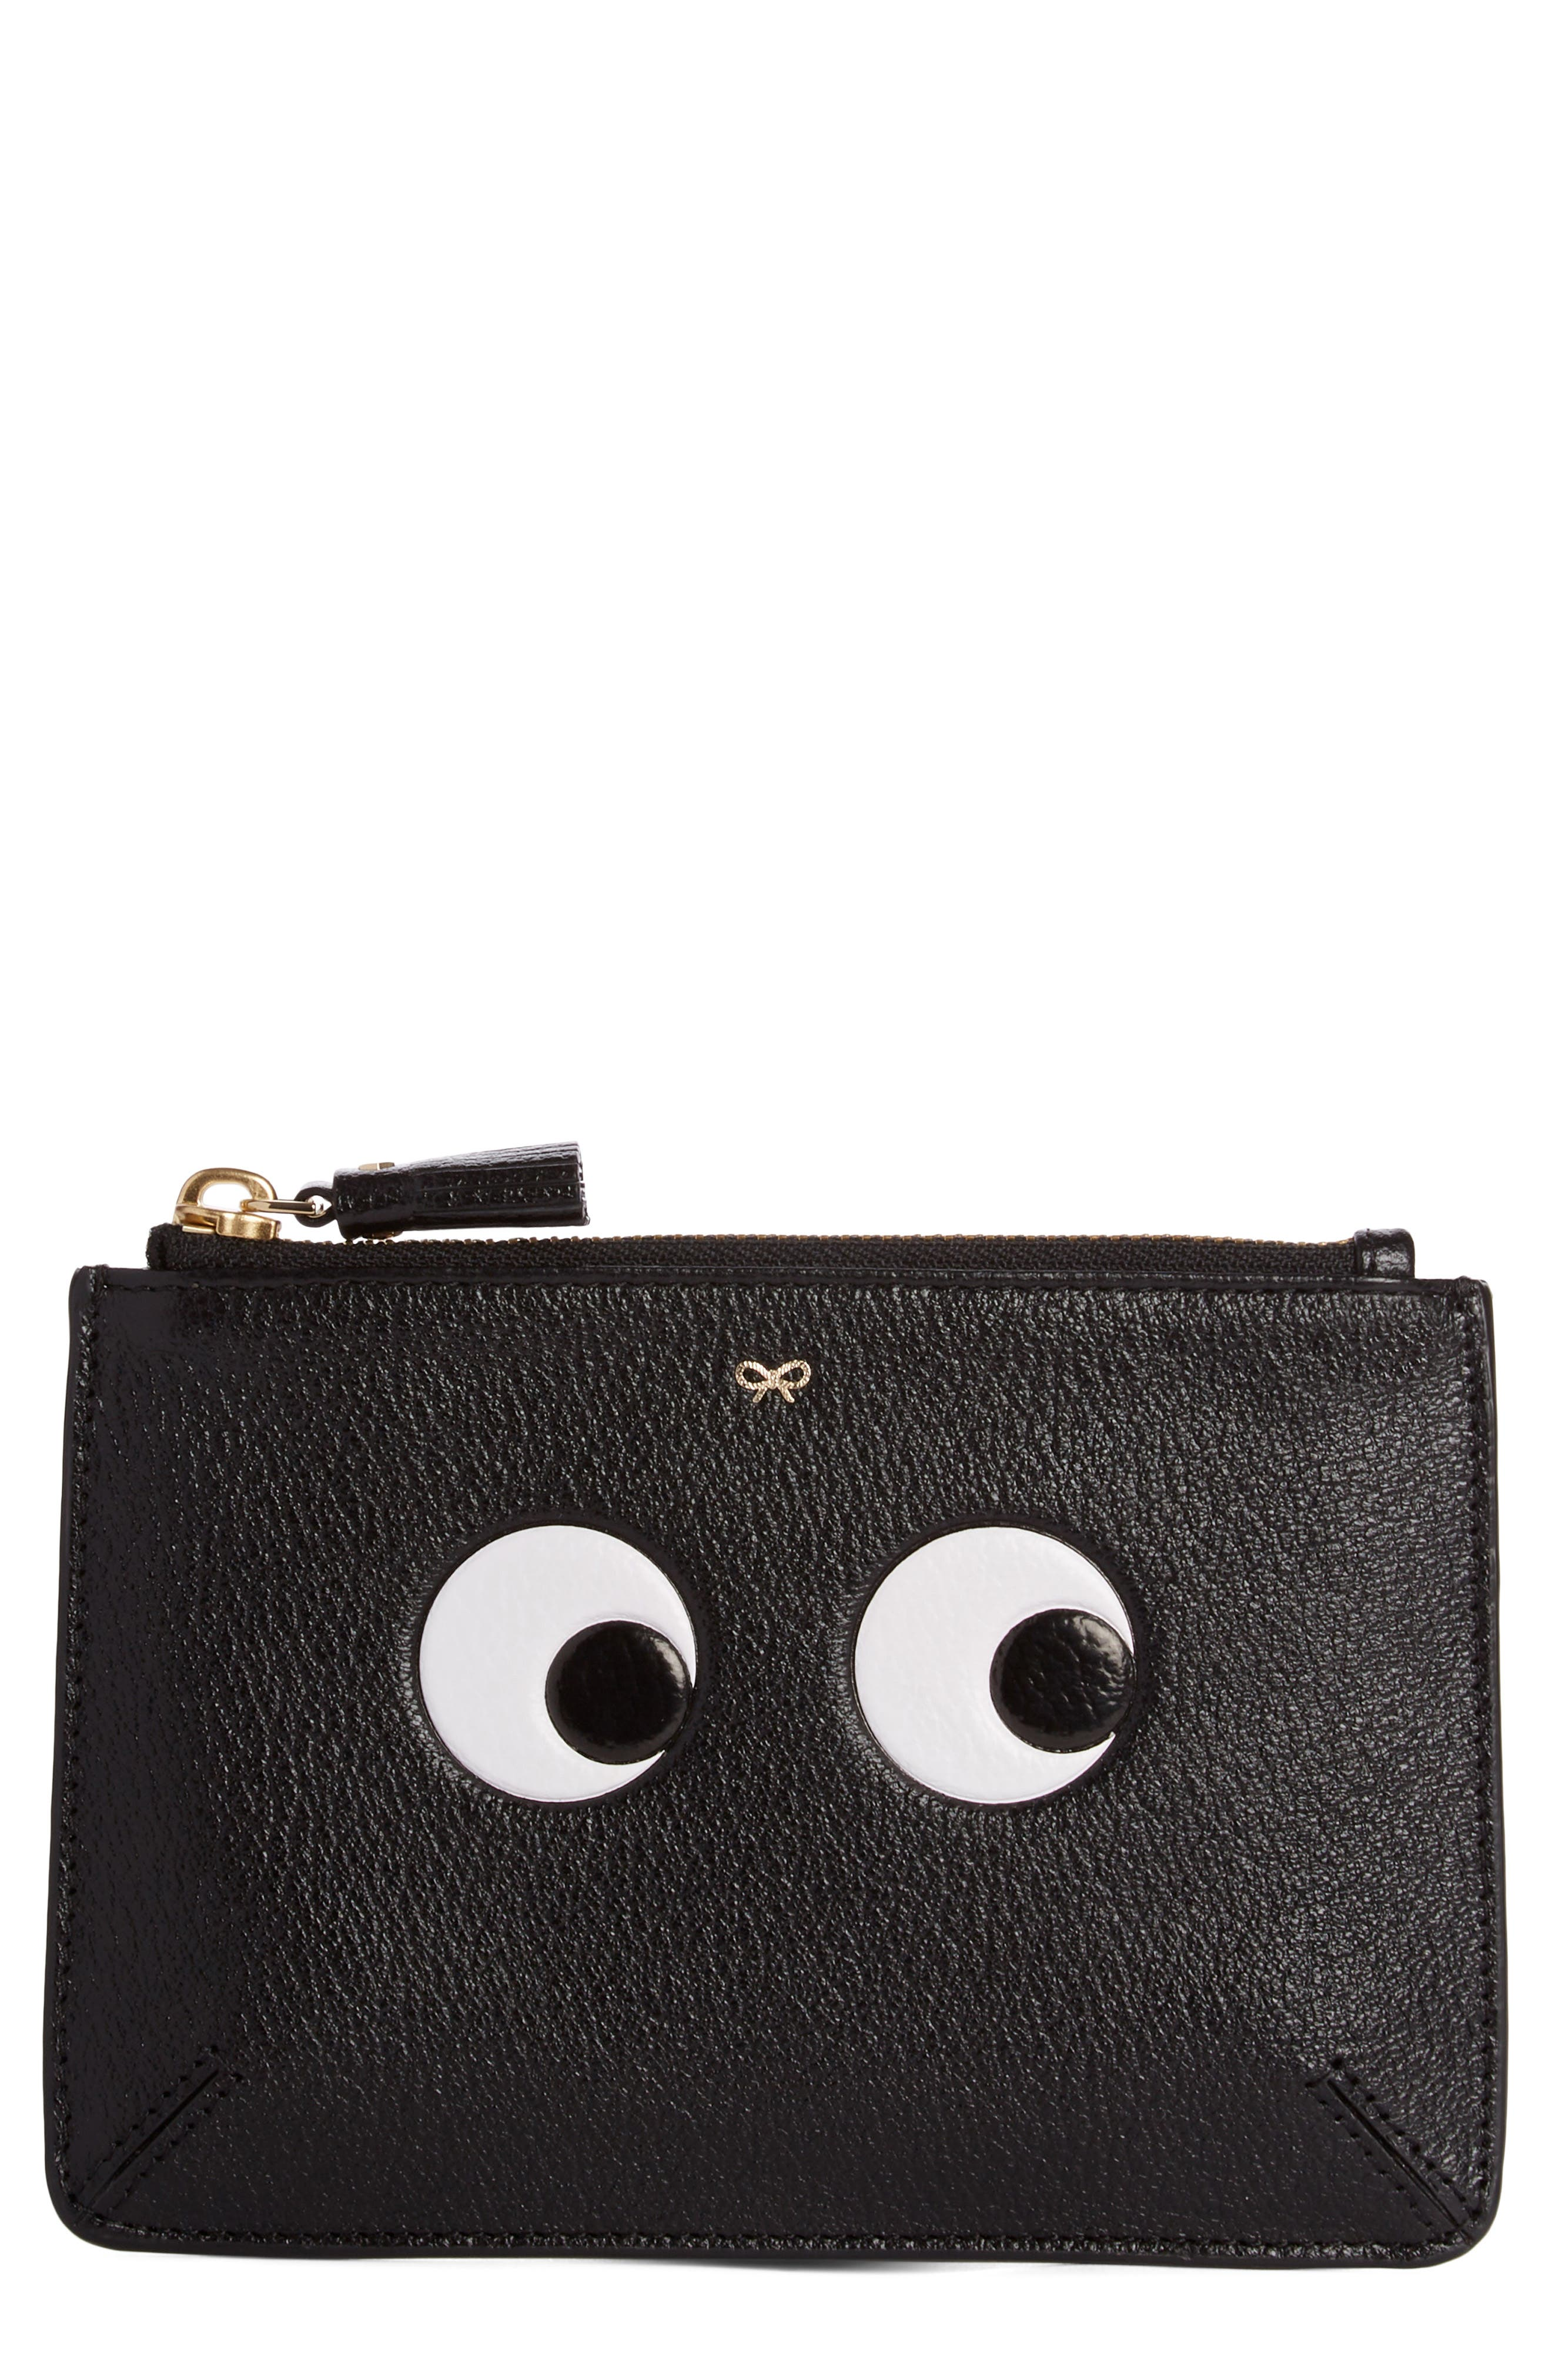 Eyes Leather Zip Pouch,                             Main thumbnail 1, color,                             BLACK/ LIGHT GREY